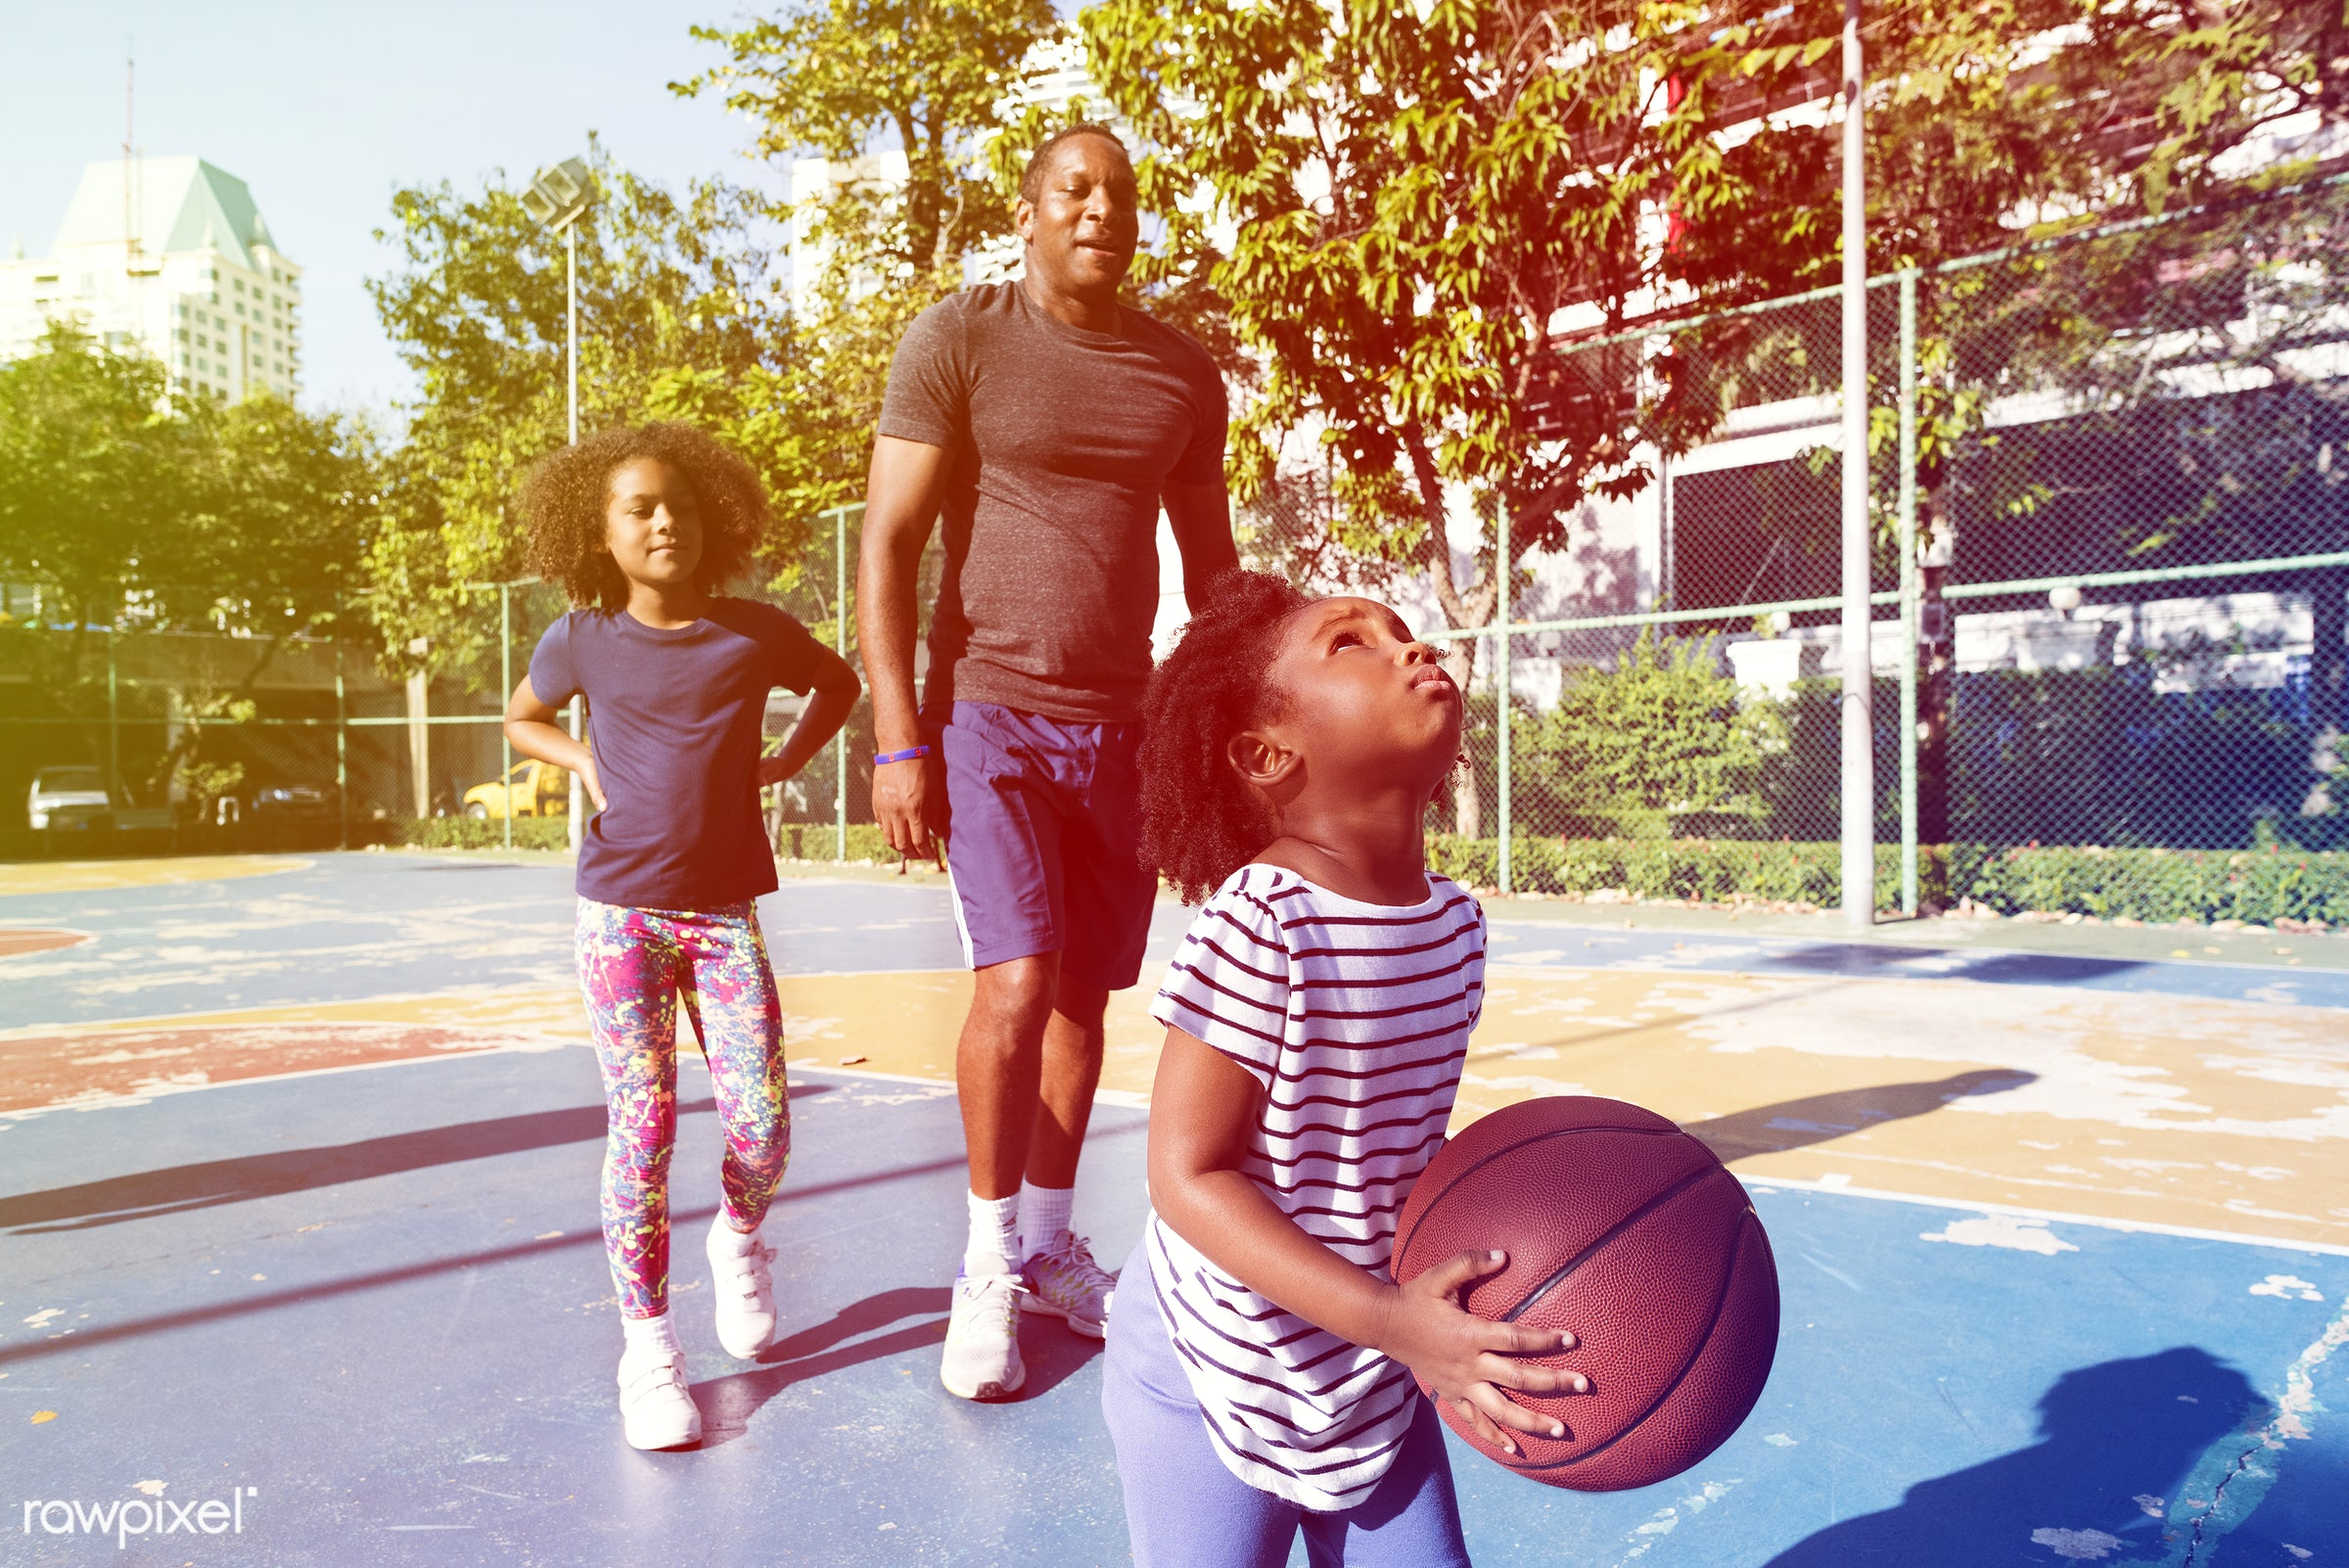 basketball, athletics, player, african, street, court, exercise, recreation, father, girl, arena, family, activity, athlete...